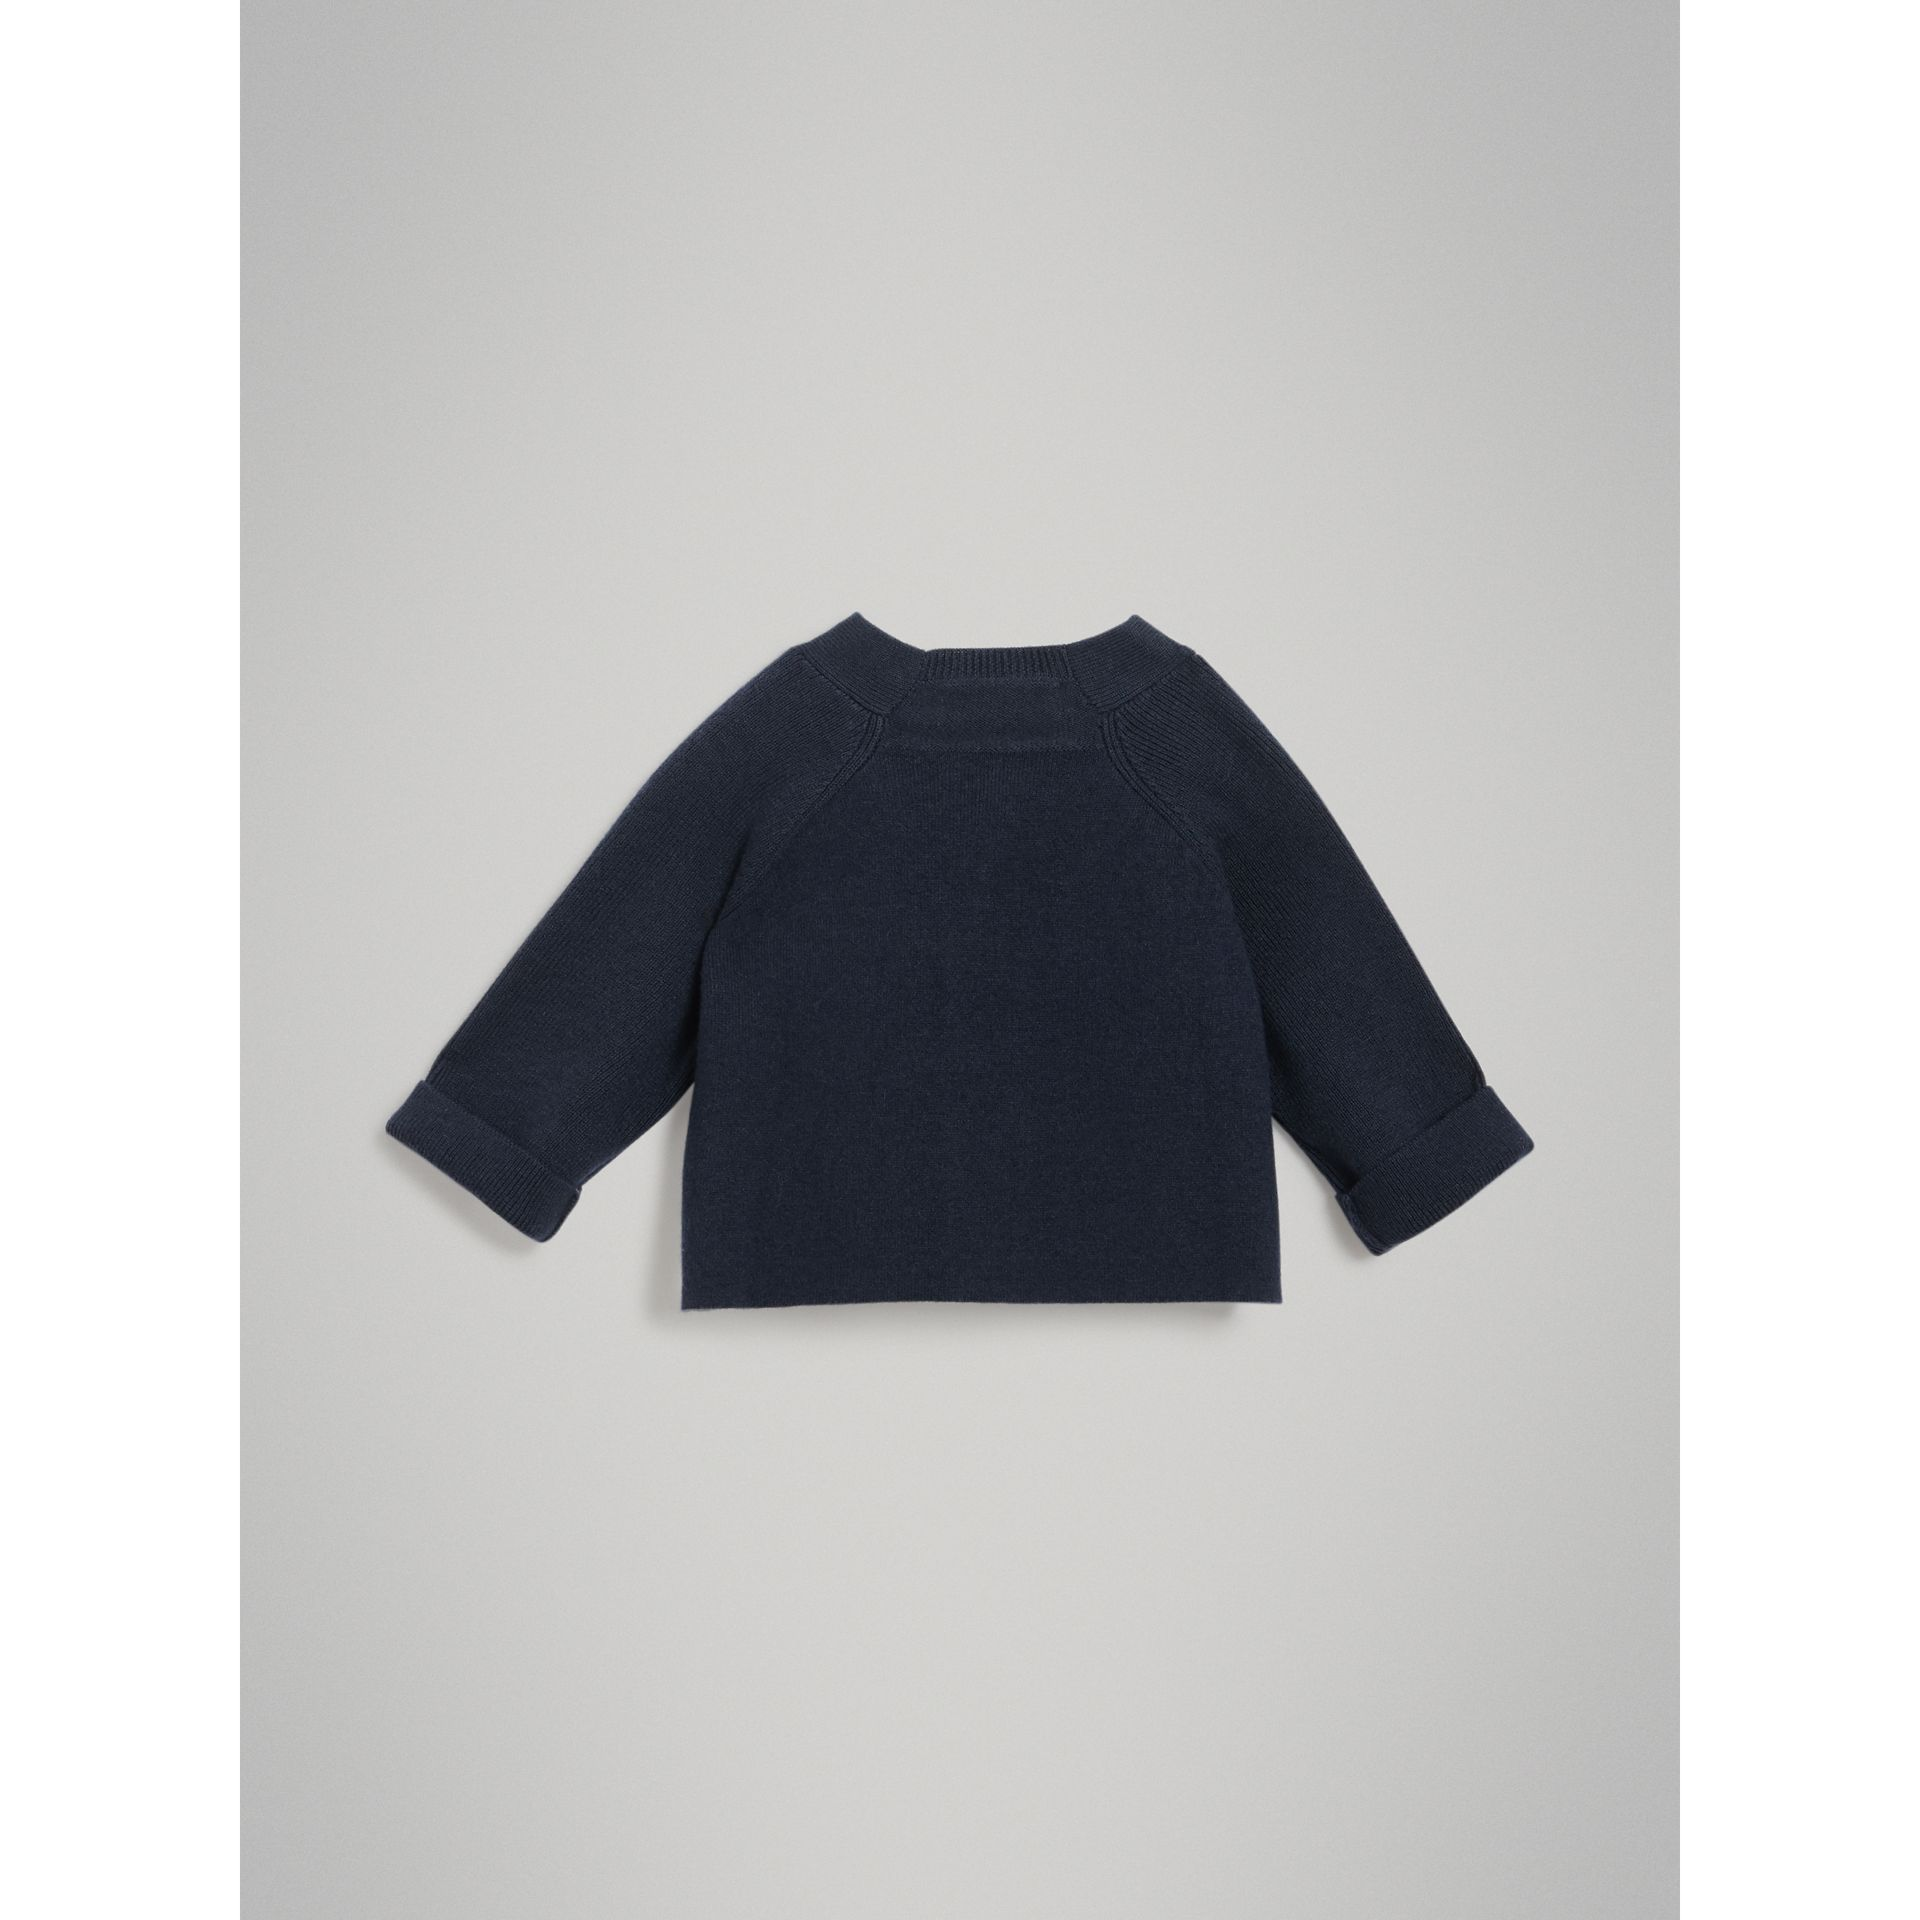 Cashmere Cotton Knit Cardigan in Navy - Children | Burberry Australia - gallery image 3